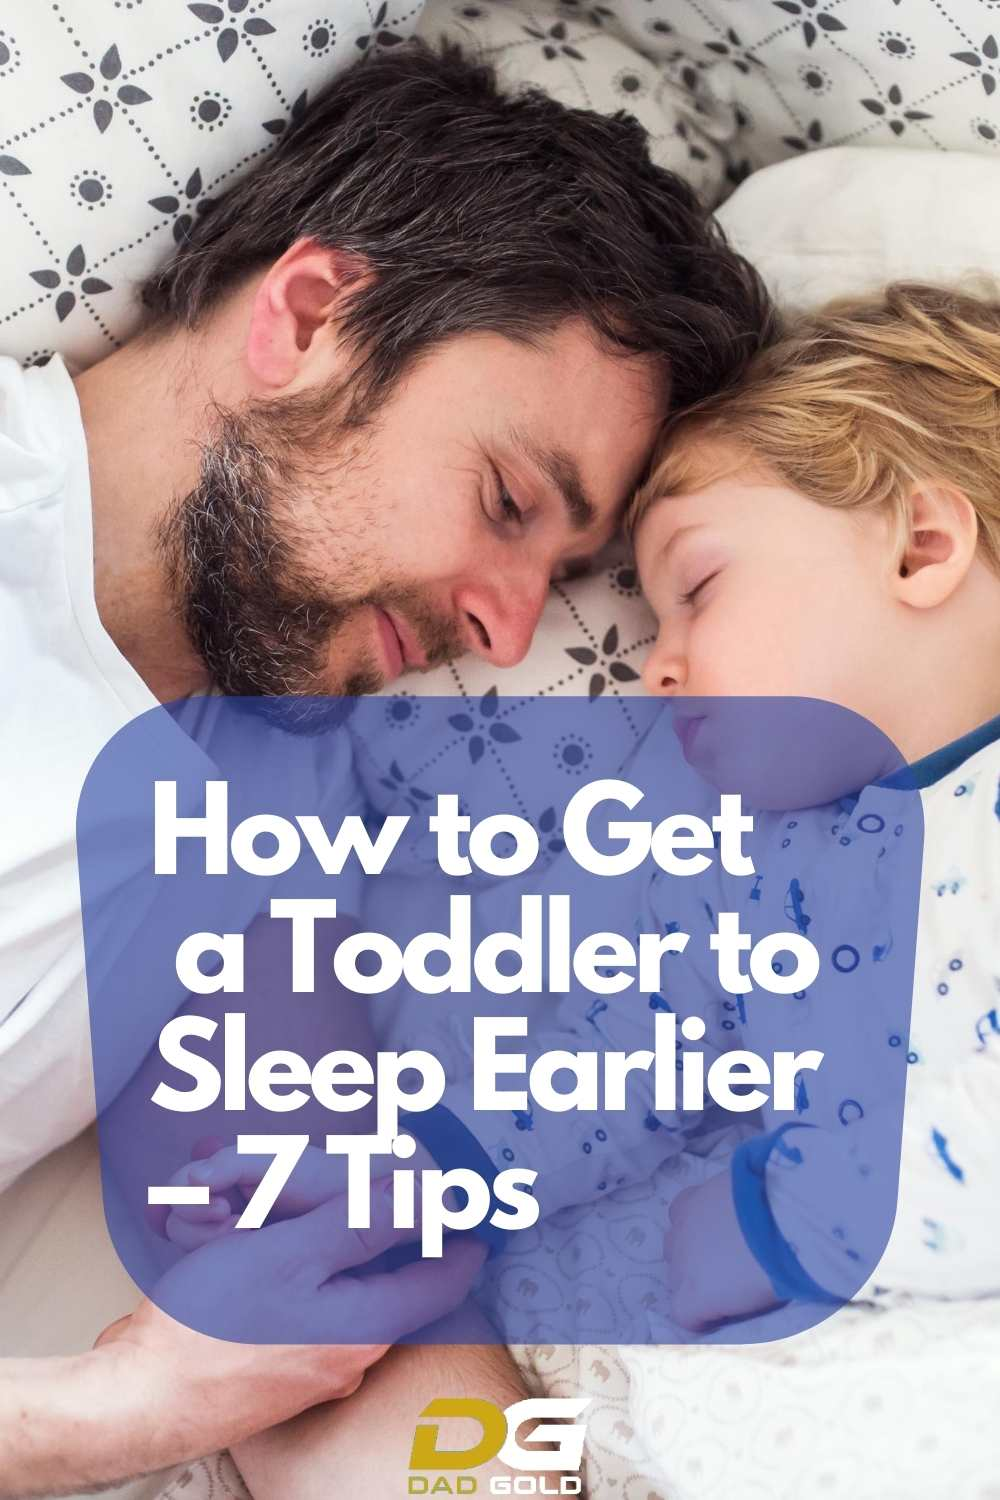 How To Get Toddler To Sleep Earlier – dadgold - parenting tips - toddler sleep